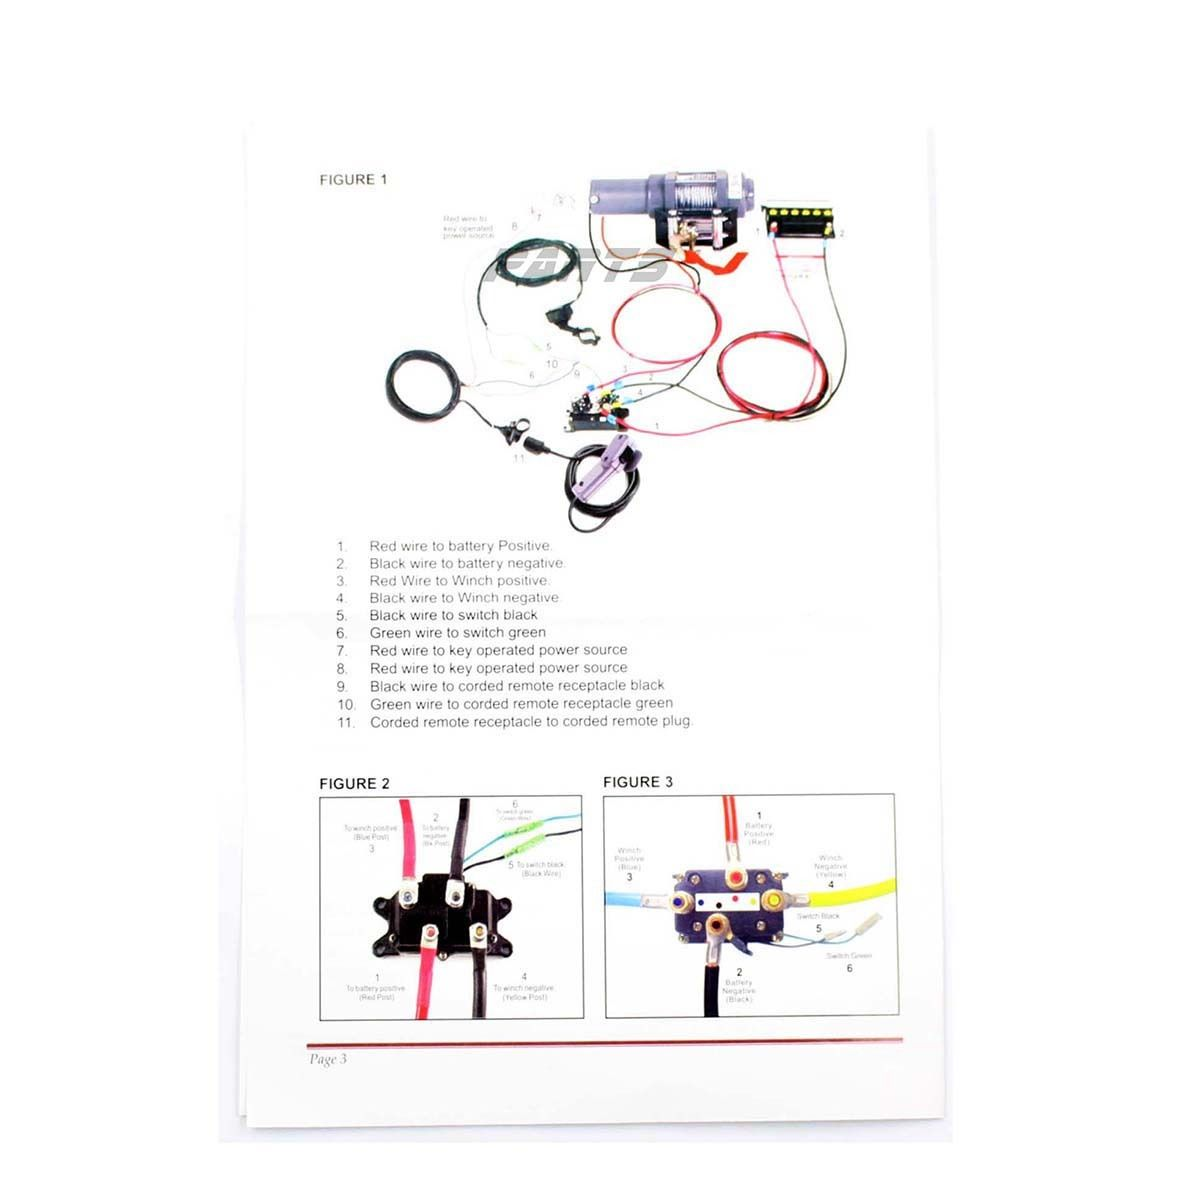 four wire switch diagram 4 wire key switch diagram 4 image wiring diagram 12v switch wiring solidfonts on 4 wire